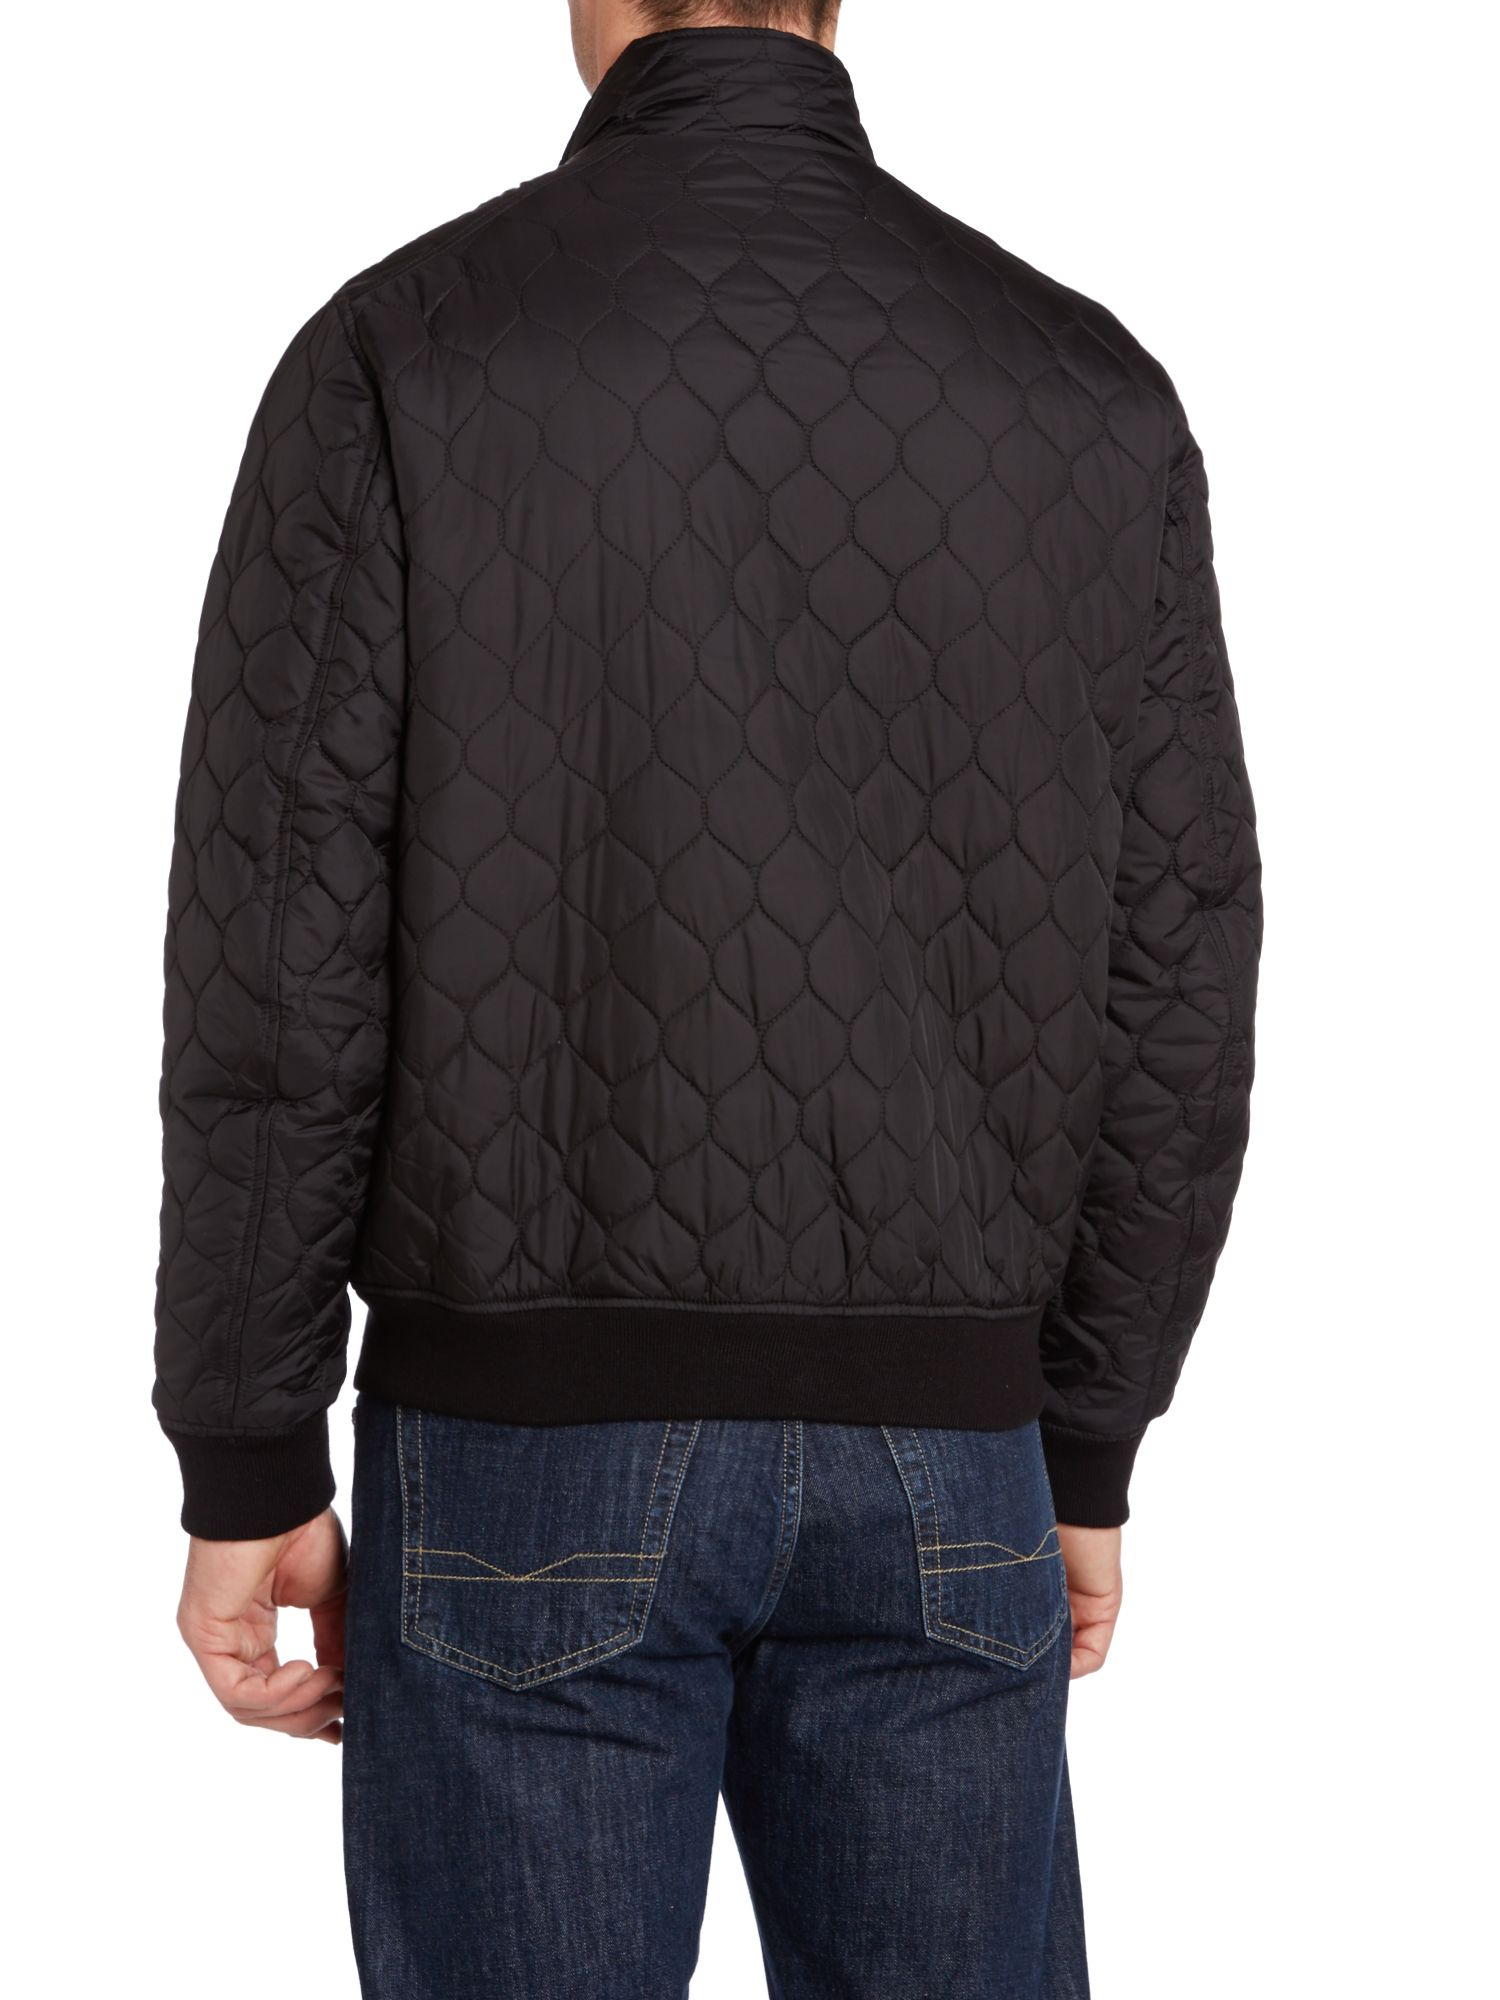 Dockers quilted bomber jacket in black for men lyst for Quilted jackets for men